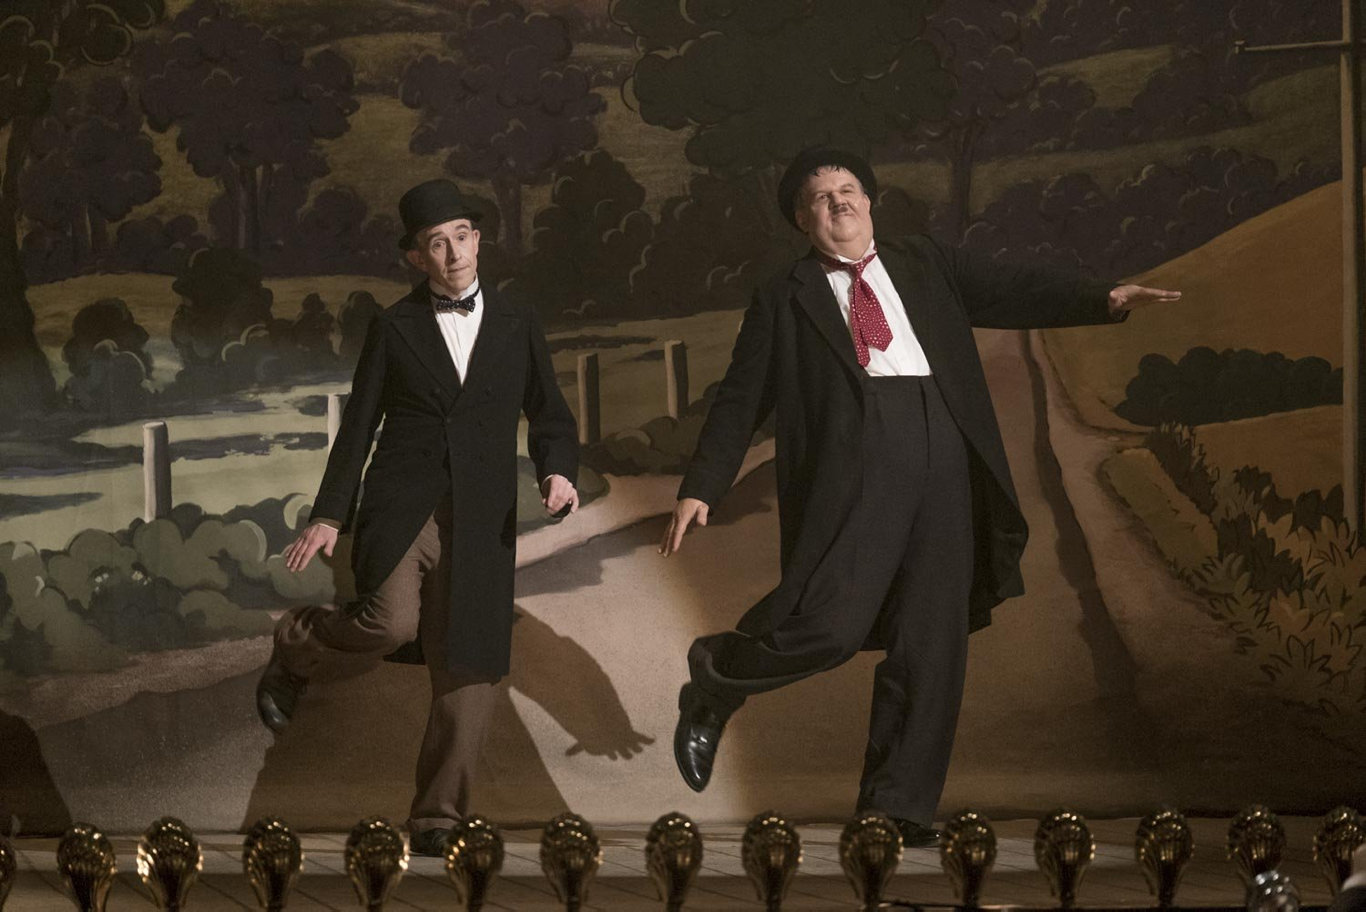 Steve Coogan and John C. Reilly in a scene from the movie Stan & Ollie.